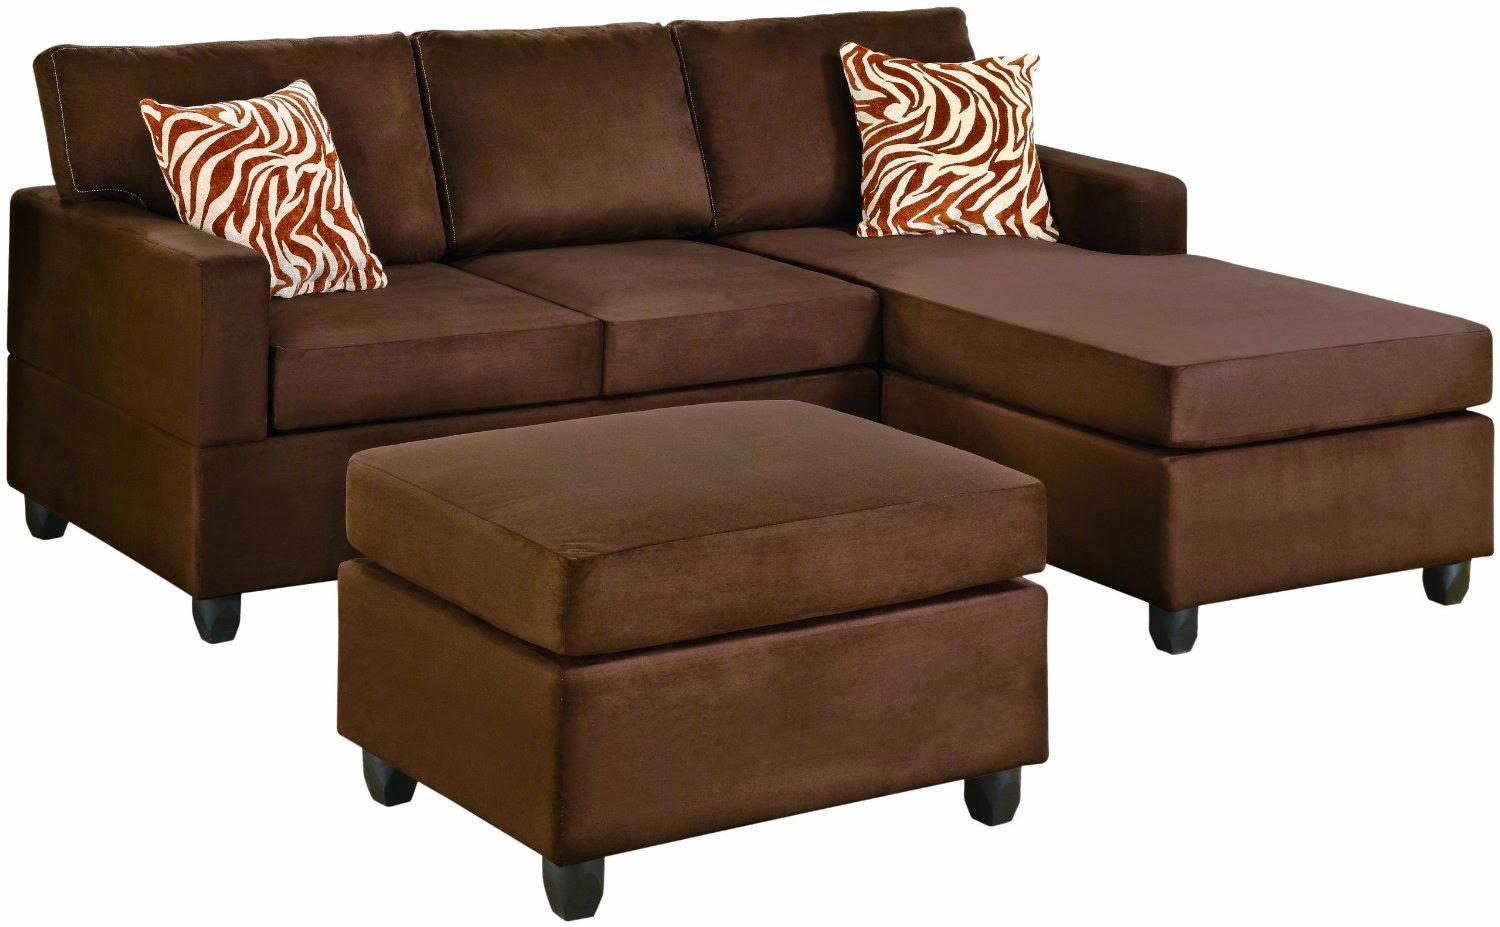 3 Piece Microfiber Sectional Sofa With Chaise Catnapper Disassembly Couch